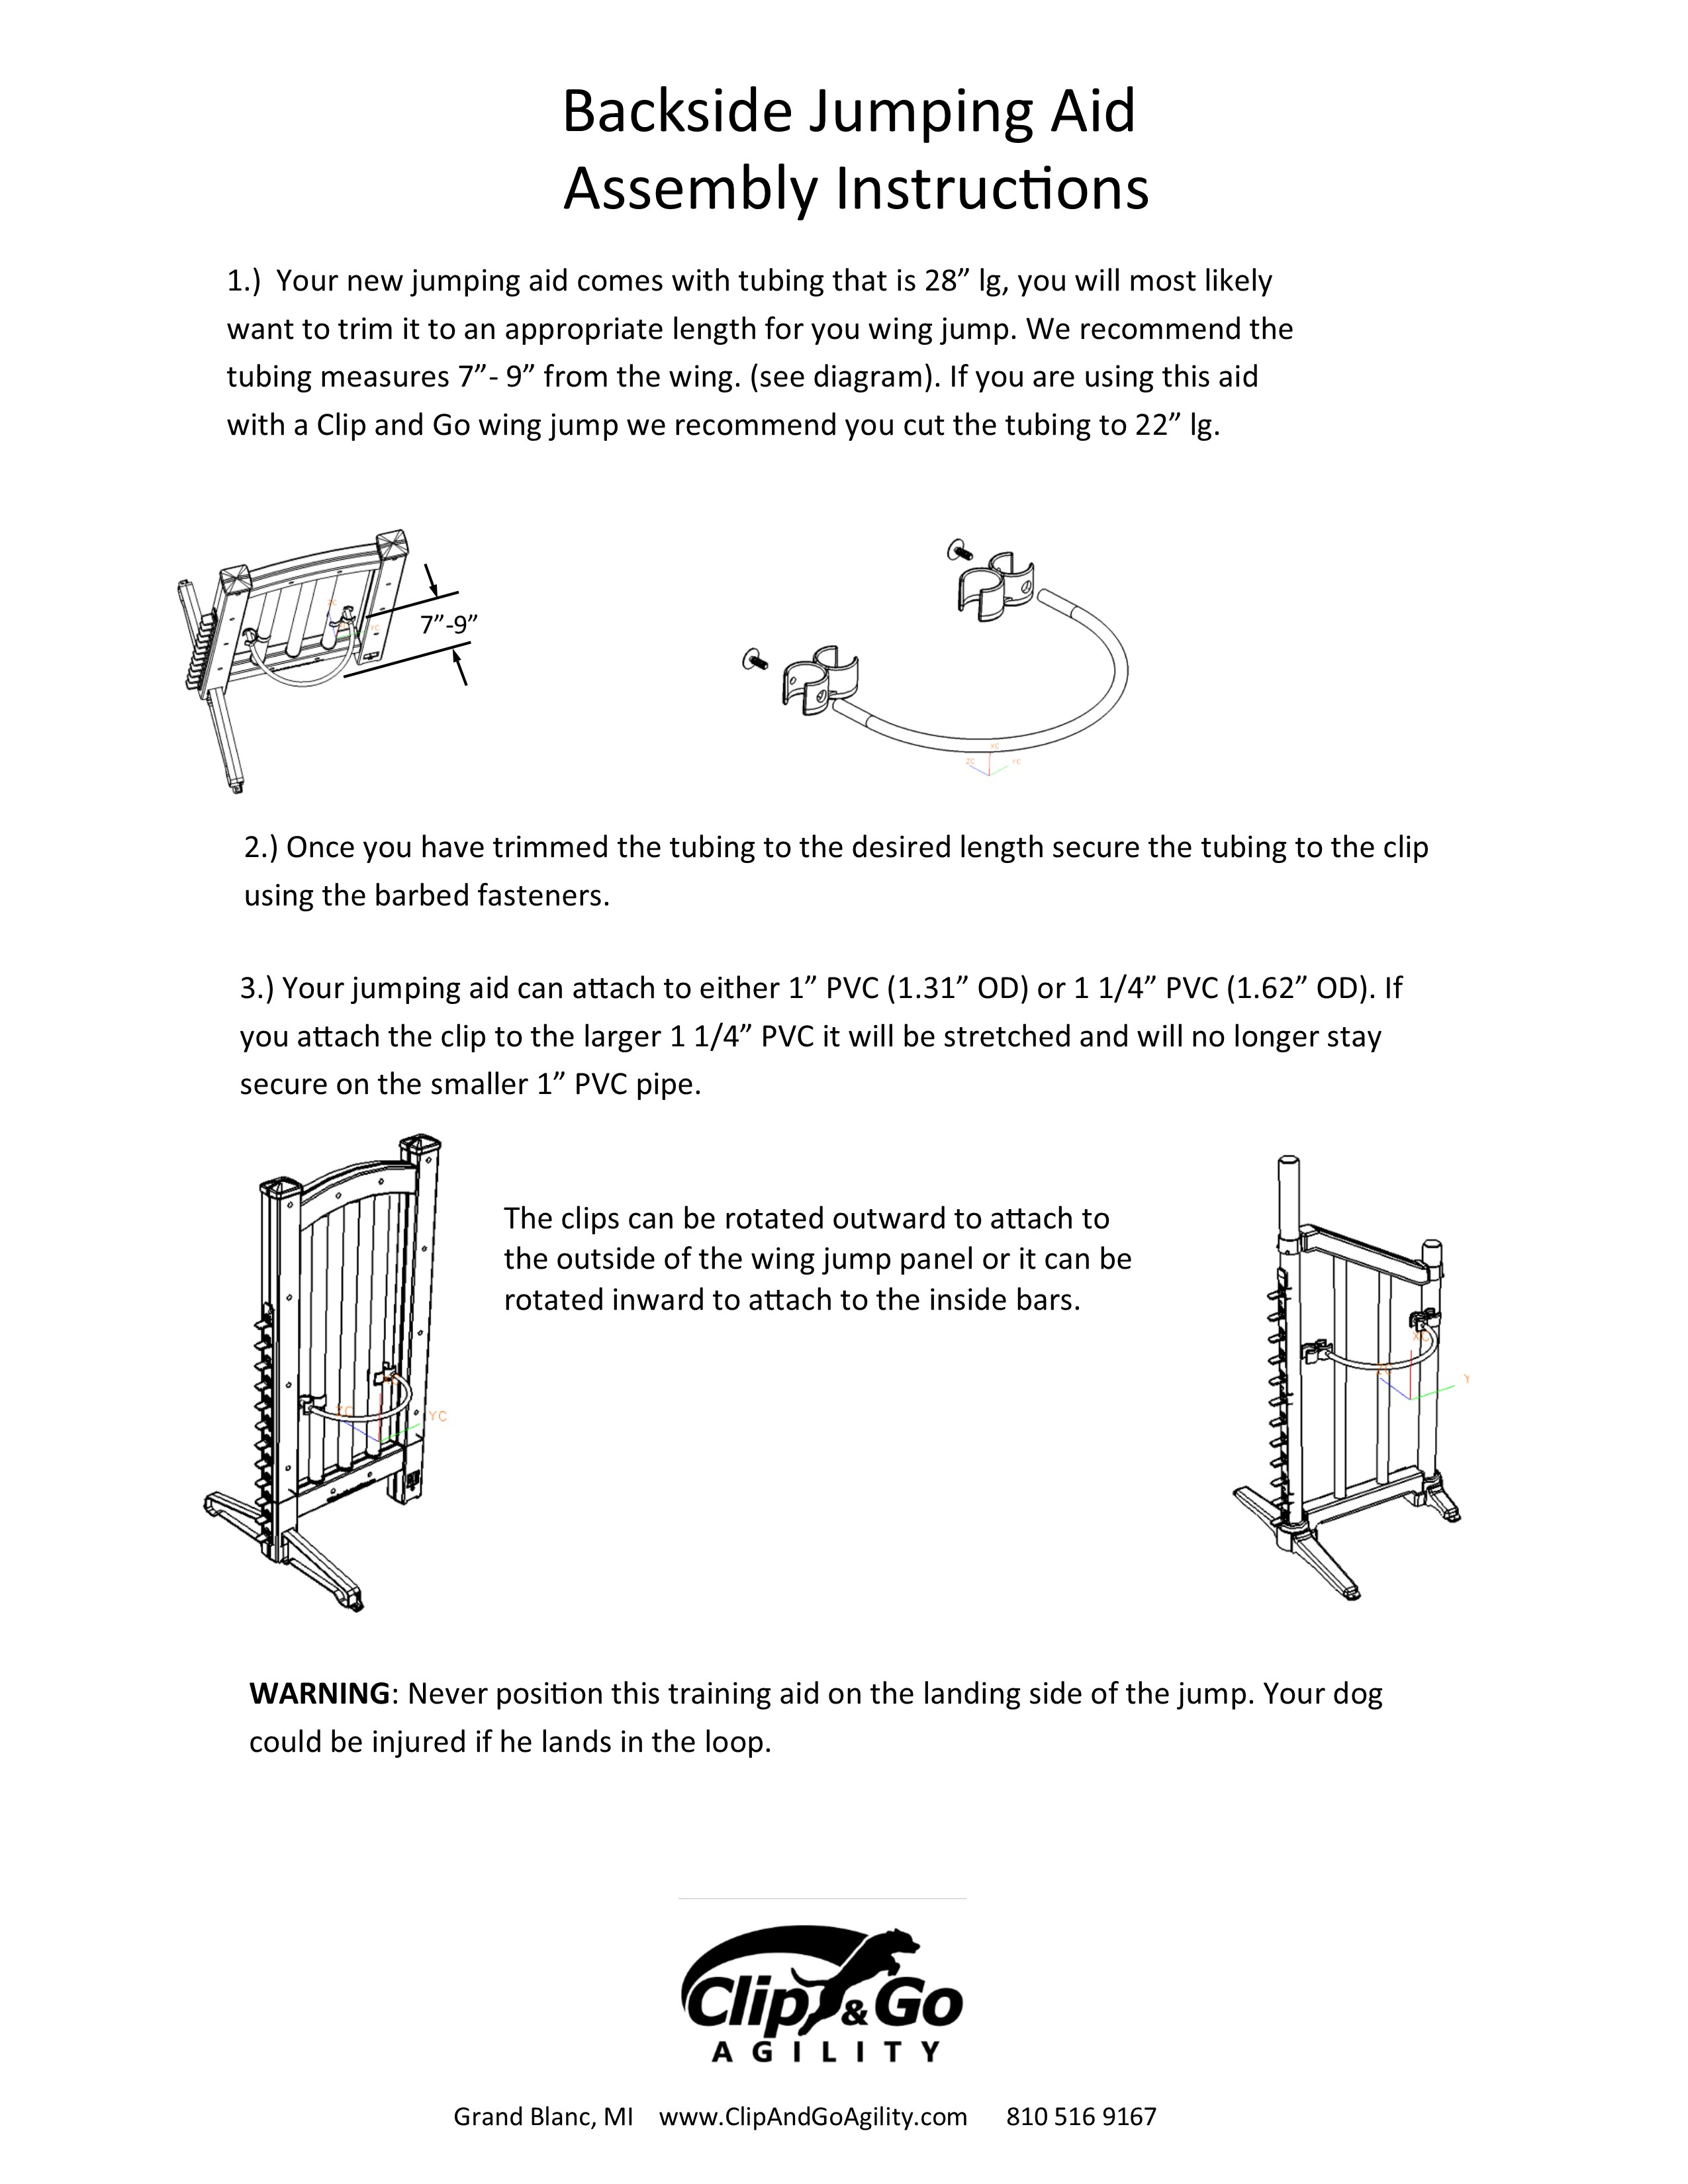 backside-aid-instructions-1.jpg